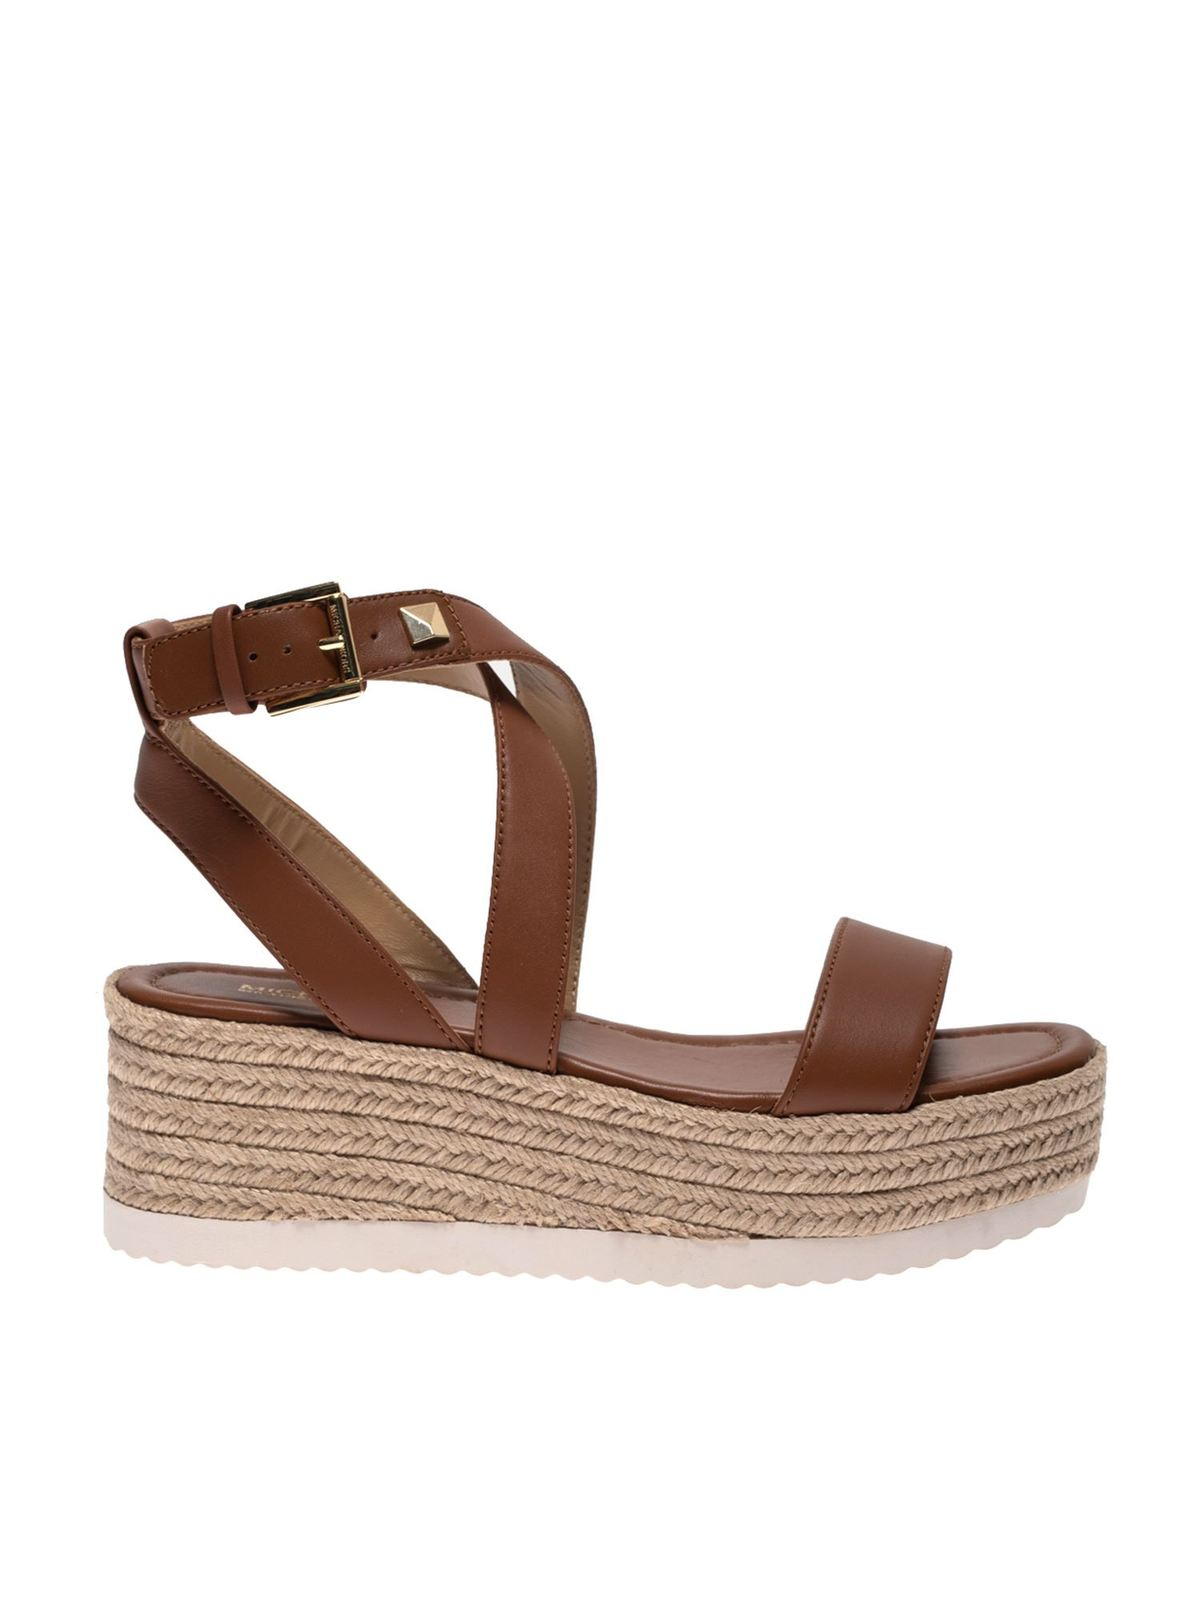 Michael Kors Leathers LOWRY SANDALS IN BROWN